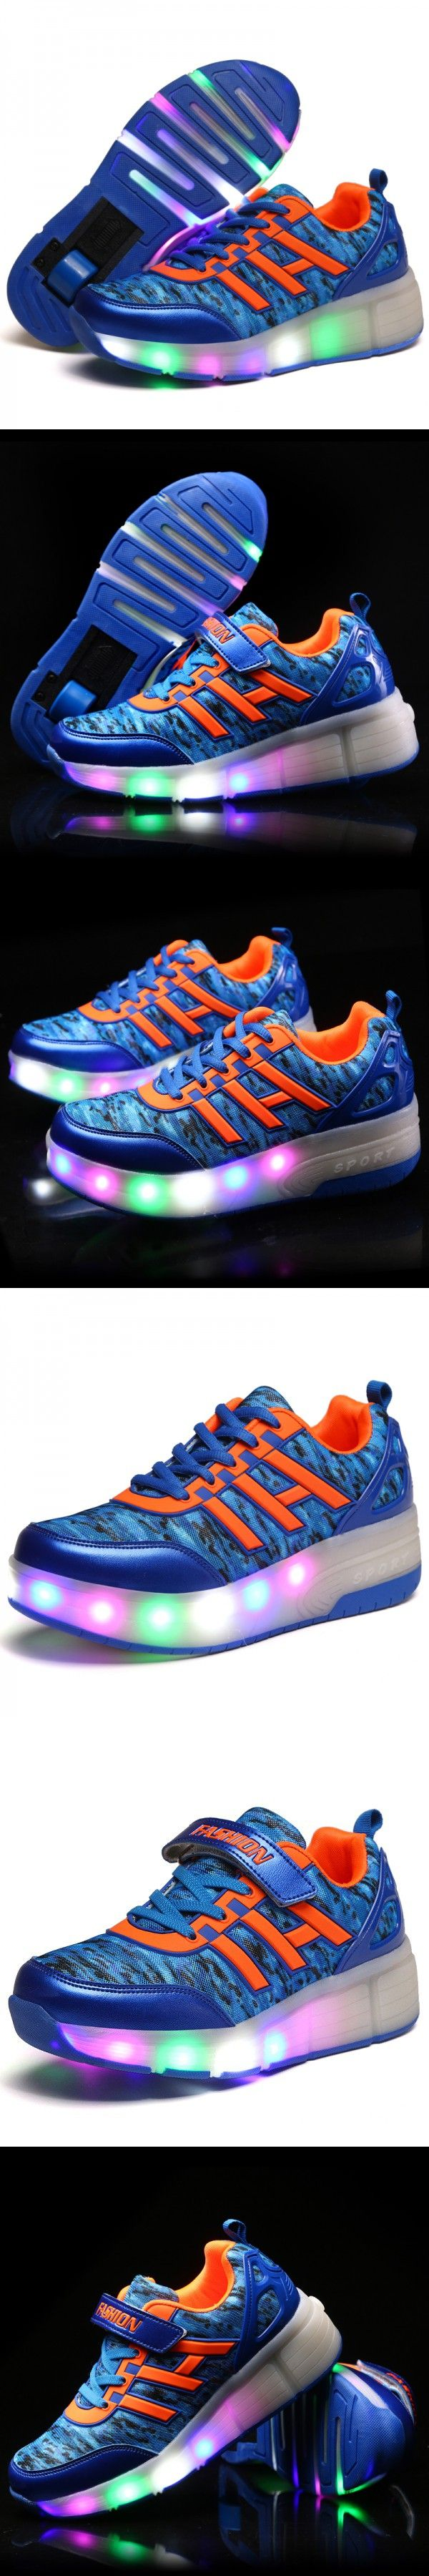 New Fashion Kids Shoes with LED Lights Children Shoes Heelys with Wheels Kids Sneakers with Led Light Up for Boys Girls Blue $29.8